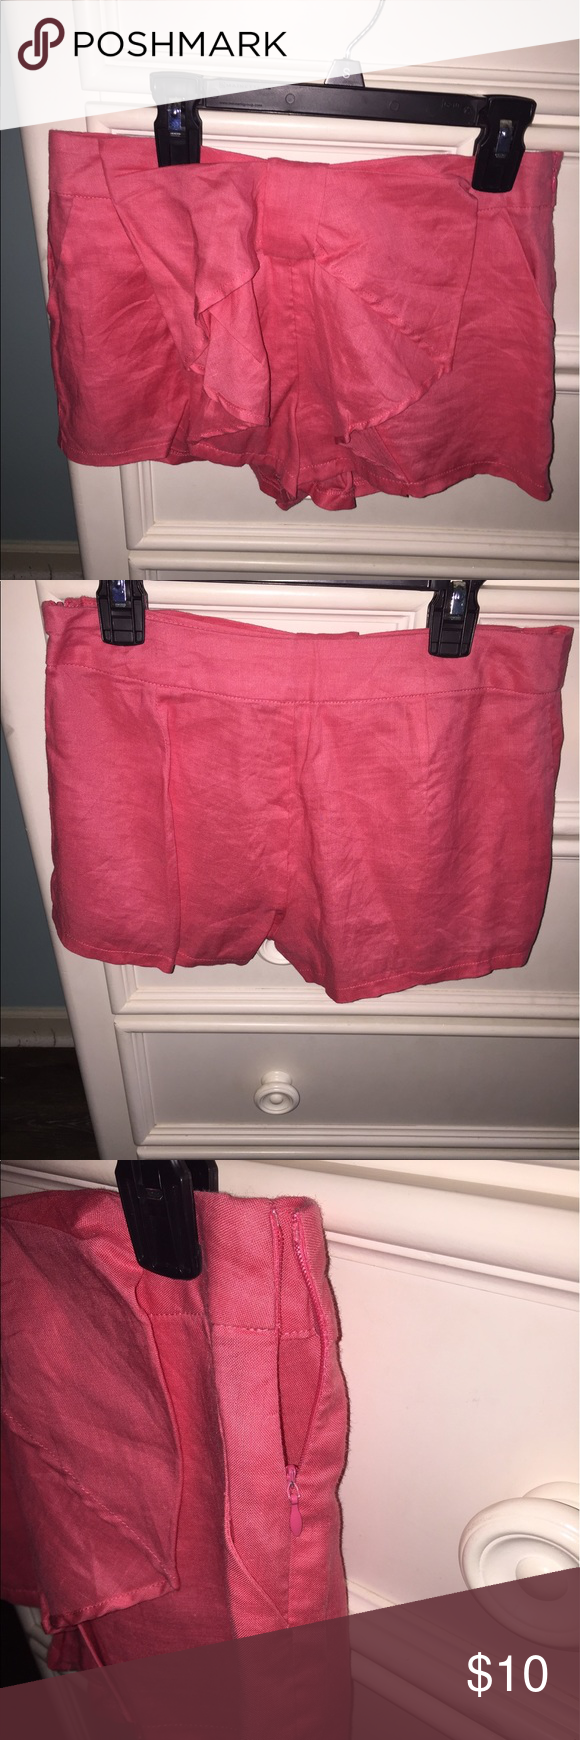 Shorts Coral colored shorts. Has bow on the front. Two pockets on front. Zipper on the side. The material of these shorts is linen. Fashionomics Shorts